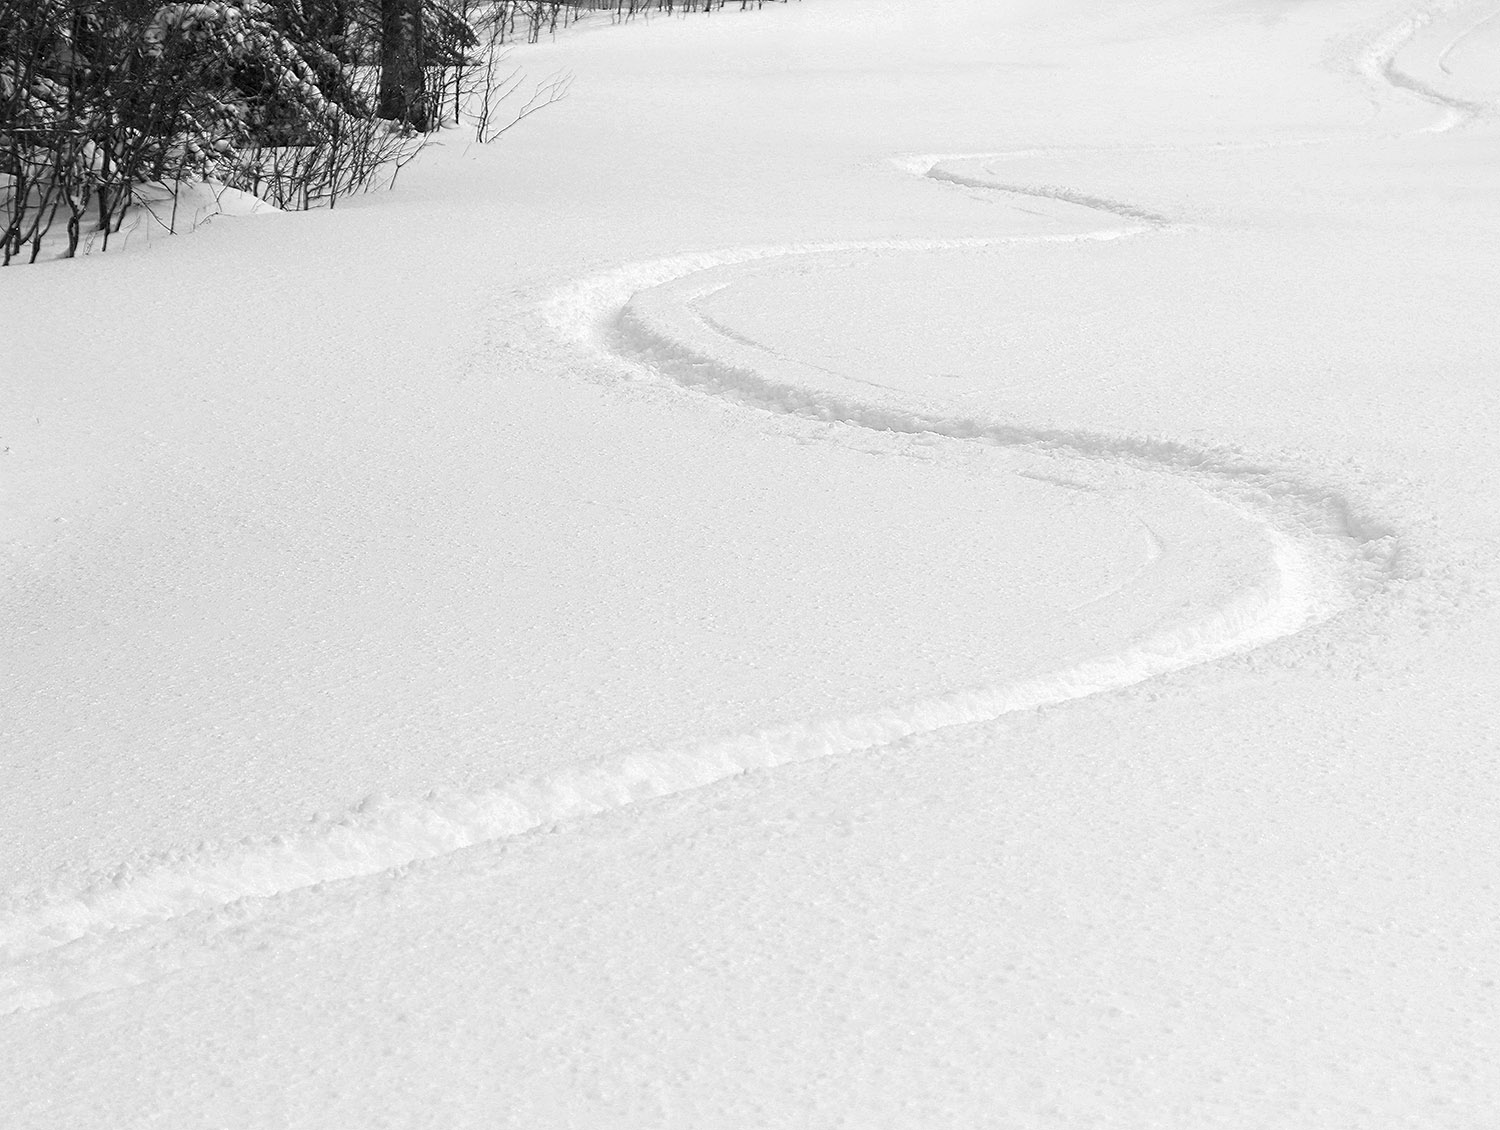 An image of ski tracks in powder after an April snowstorm in the Wilderness terrain area at Bolton Valley Ski Resort in Vermont